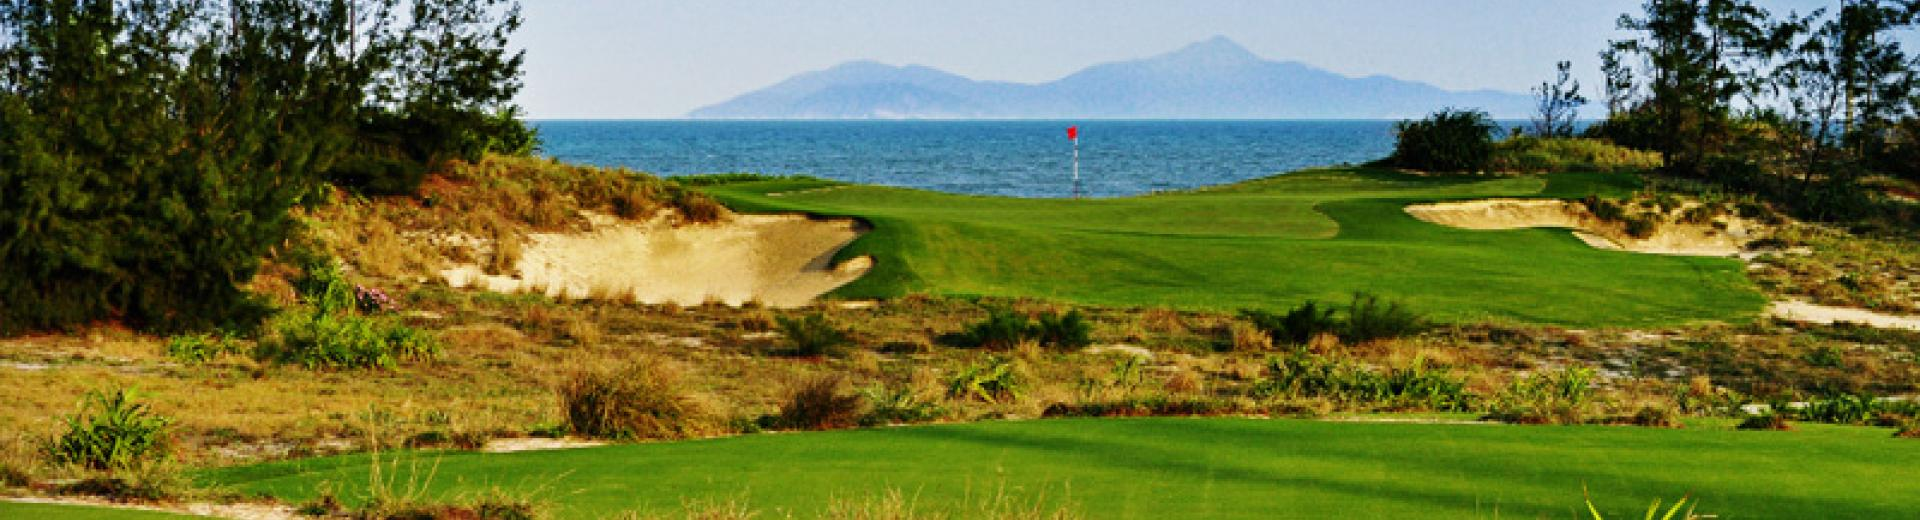 The at Danang Golf Club plays out to the South China Sea pic Danang Golf Club